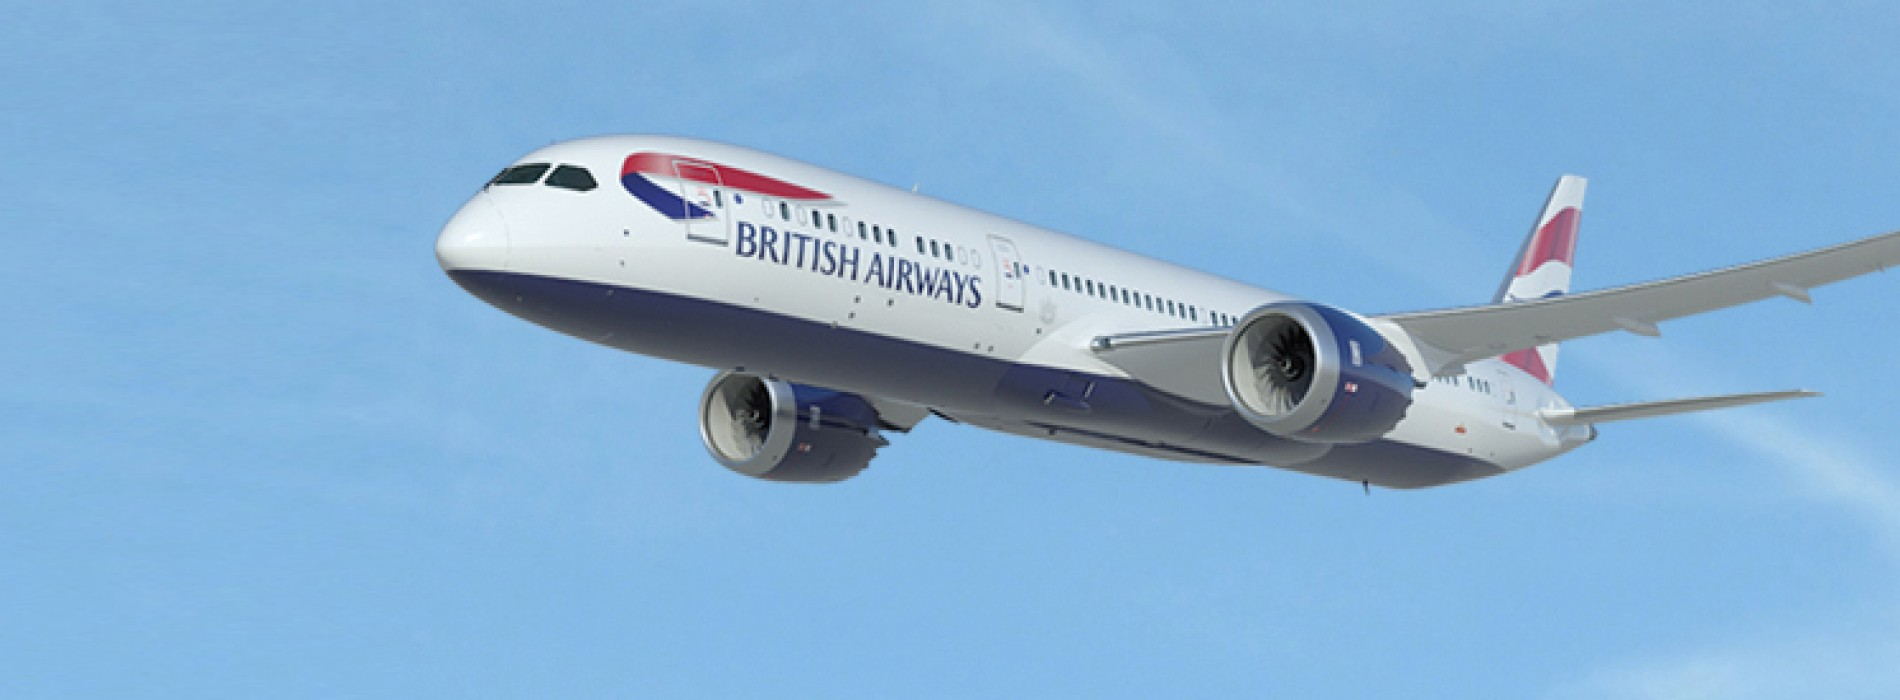 Delhi to be the inaugural route for British Airways' Boeing 787-9